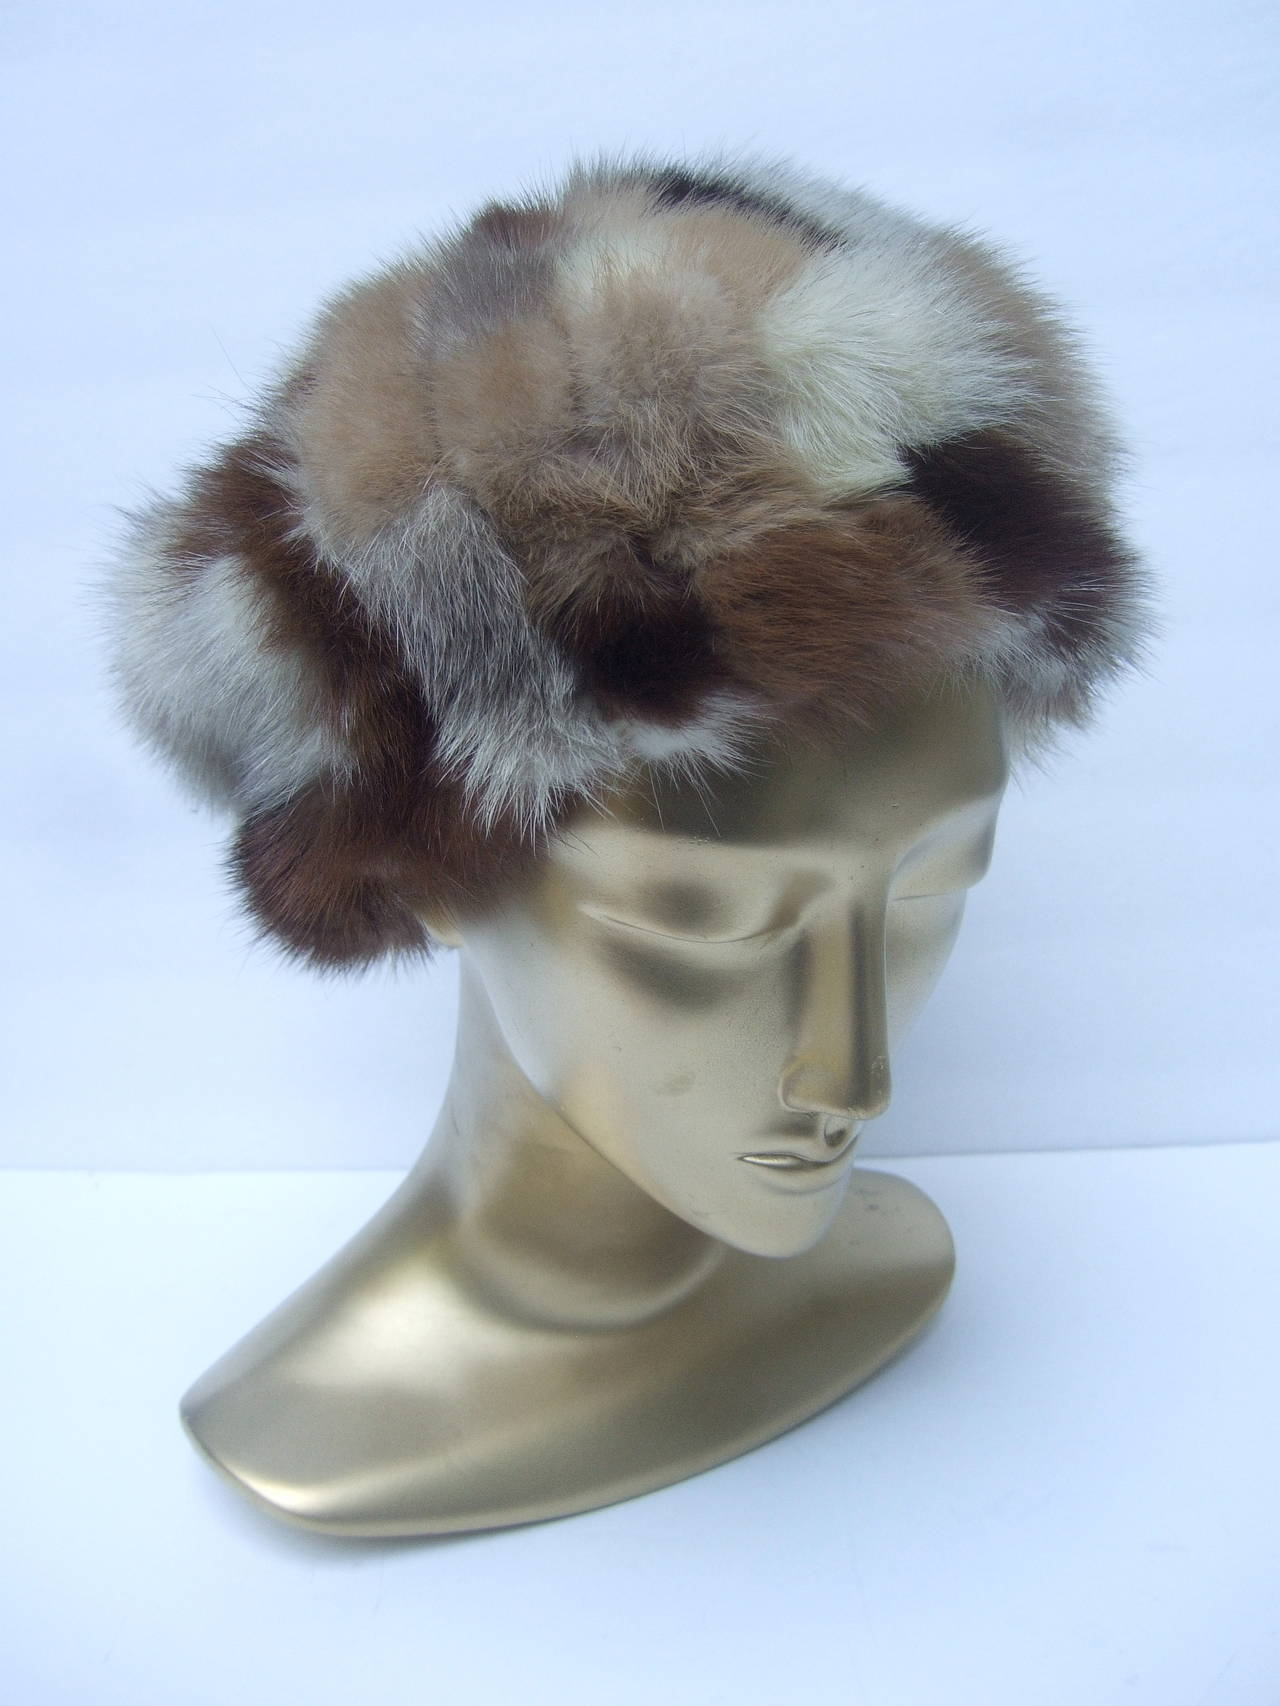 Saks Fifth Avenue Patch tile hat c 1970 The stylish retro mink fur hat is designed  with a myriad of different colors of mink  The mink patch tiles range from blonde, to medium brown to darker mahogany   The interior is lined in brown